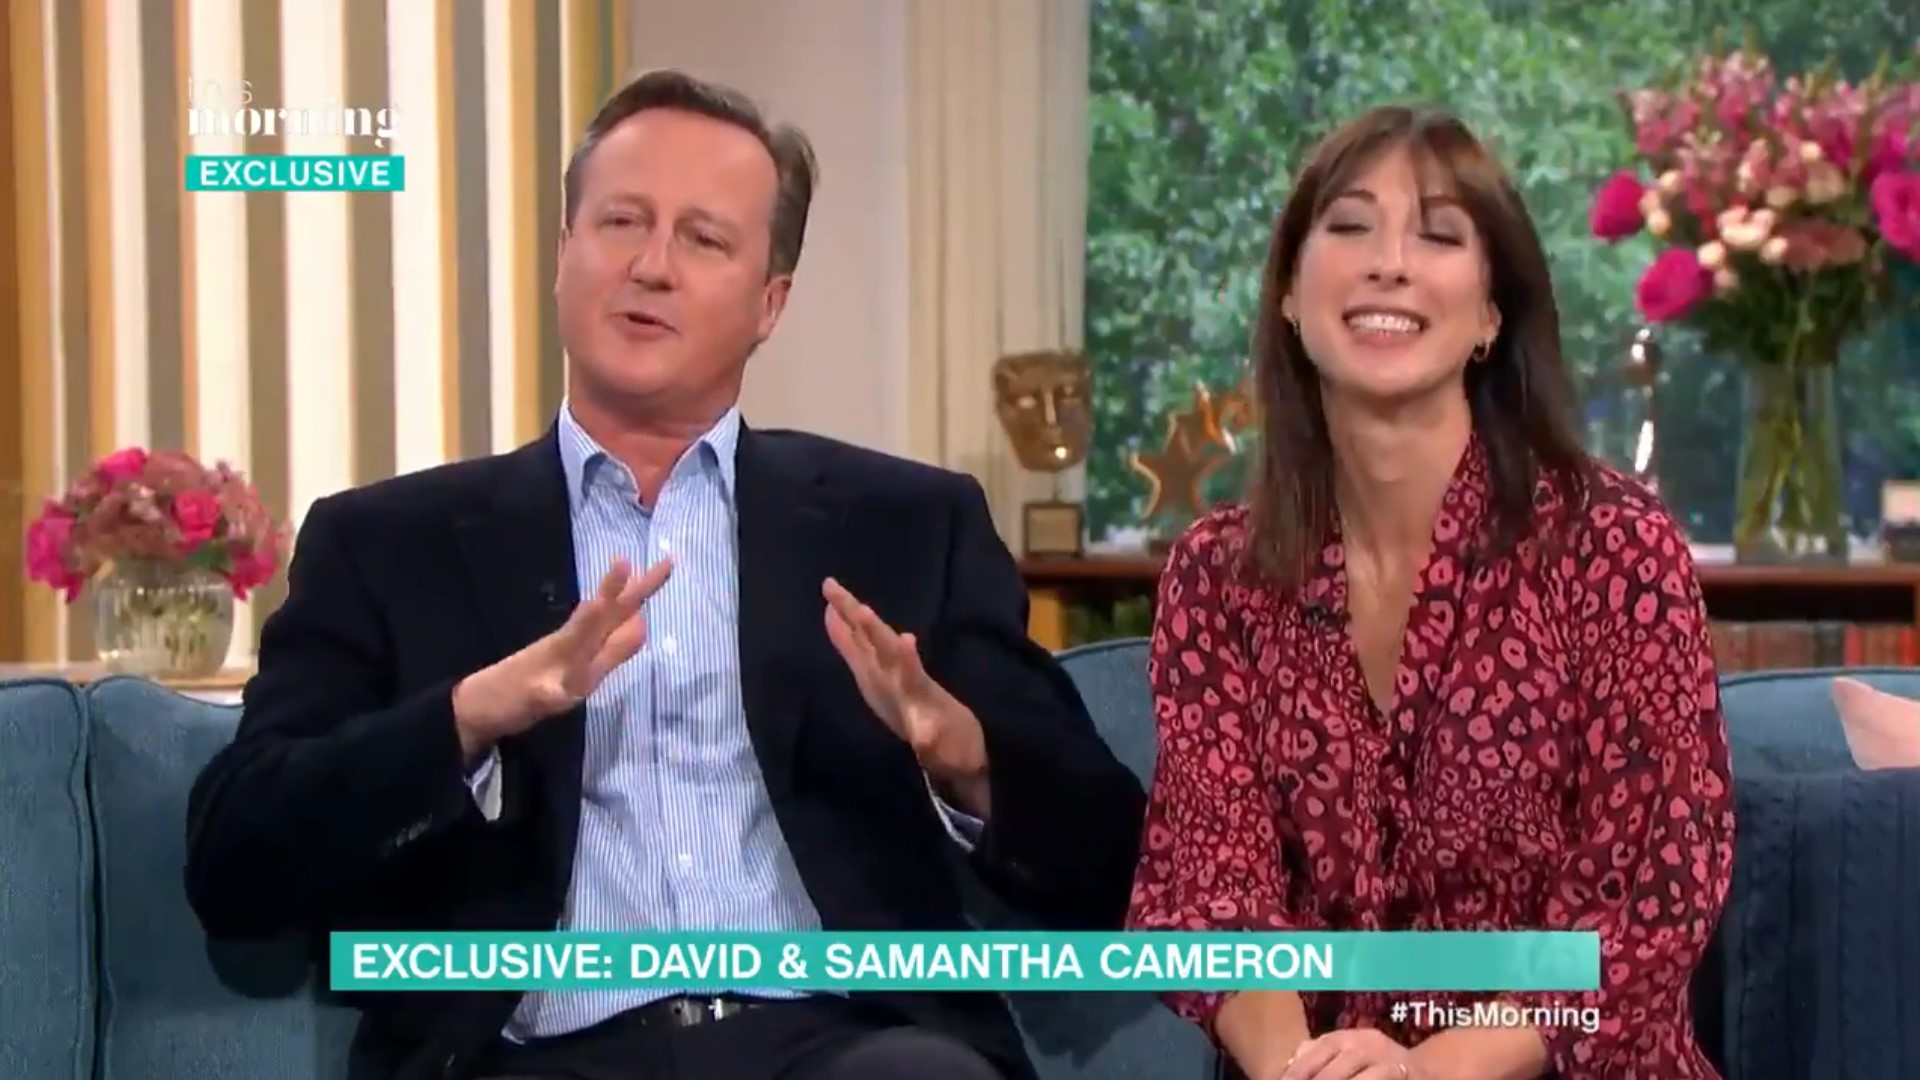 Former PM David Cameron made an accidental poo joke while appearing on 'This Morning' with his wife, Samantha (ITV)